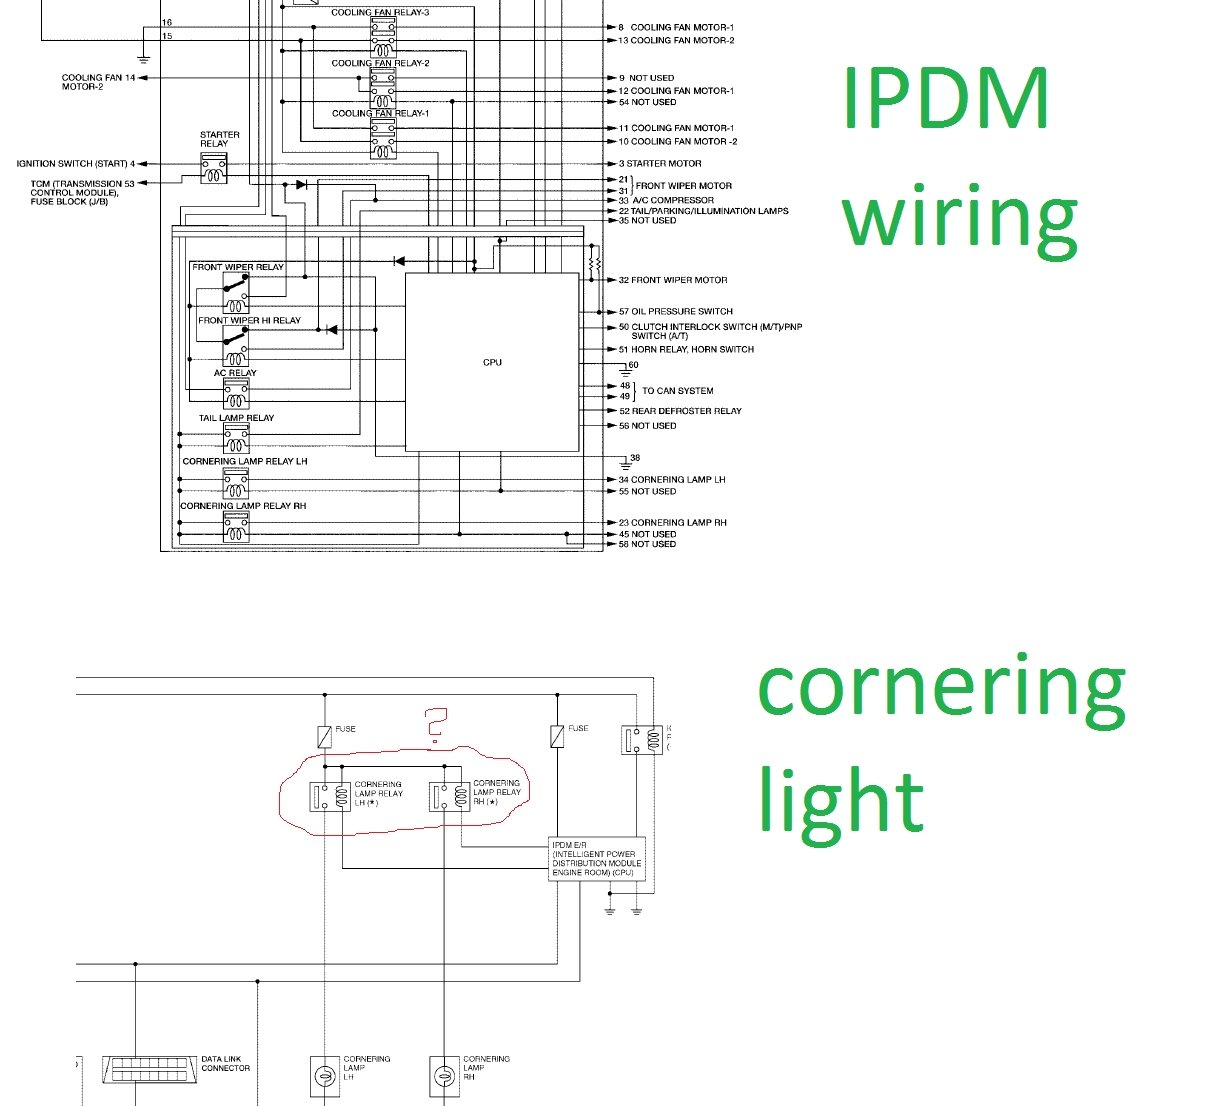 Astounding Wiring Diagram For Cornering Lights Wiring Library Wiring Cloud Hisonuggs Outletorg